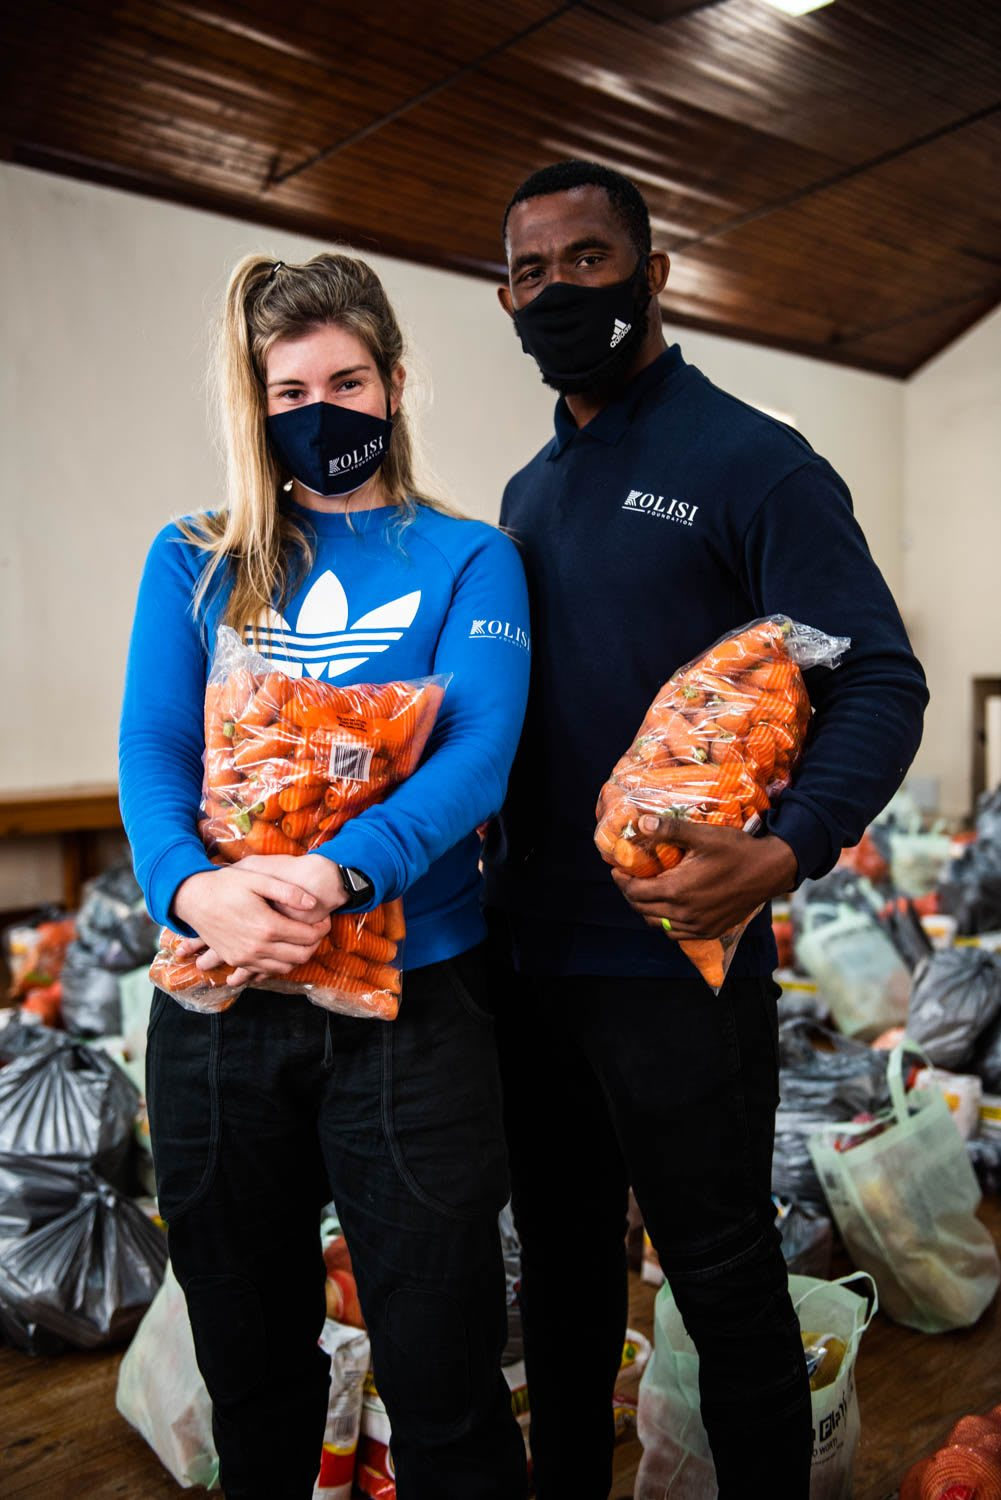 Rachel and Siya Kolisi holding bags of carrots for communities in South Africa during coronarvirus pandemic, volunteering, donation, help. South Africa, Kolisi Foundation